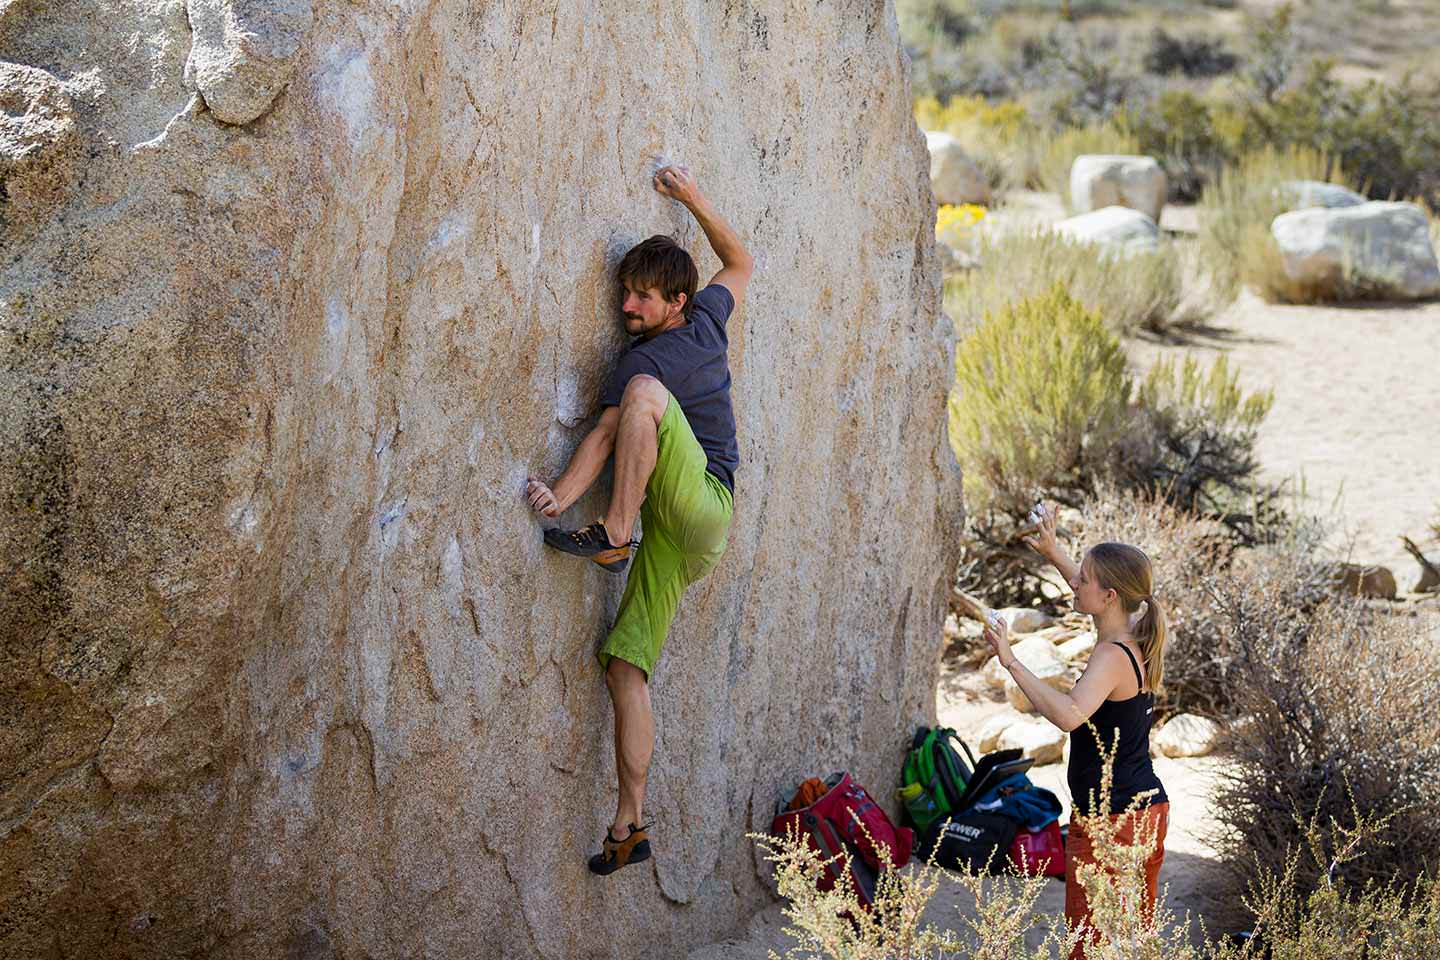 Flexibility boulder problem in bishop, buttermilks